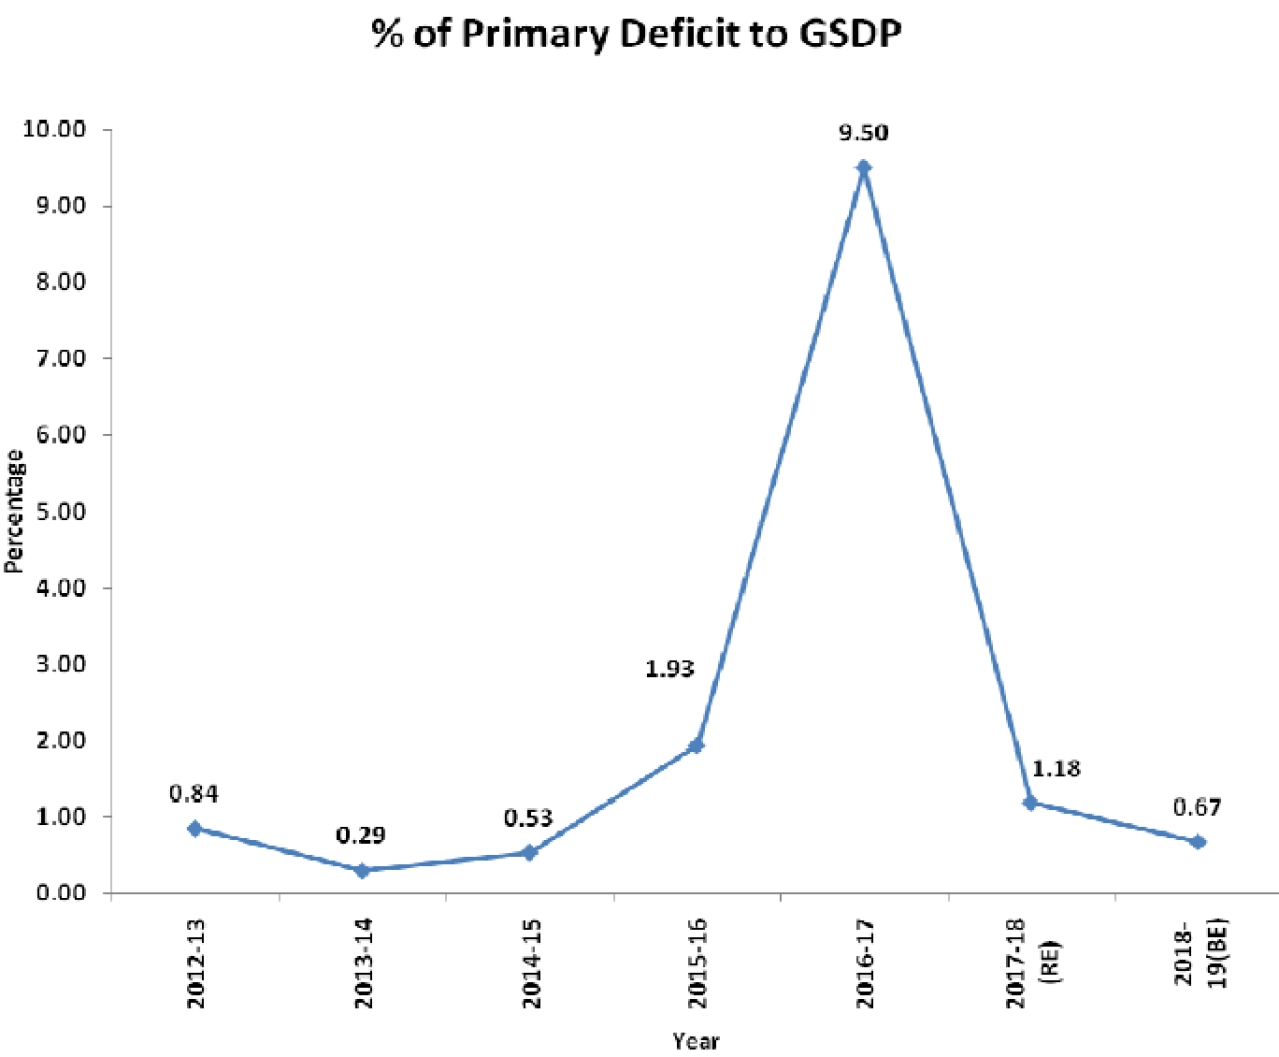 Primary deficit to GSDP